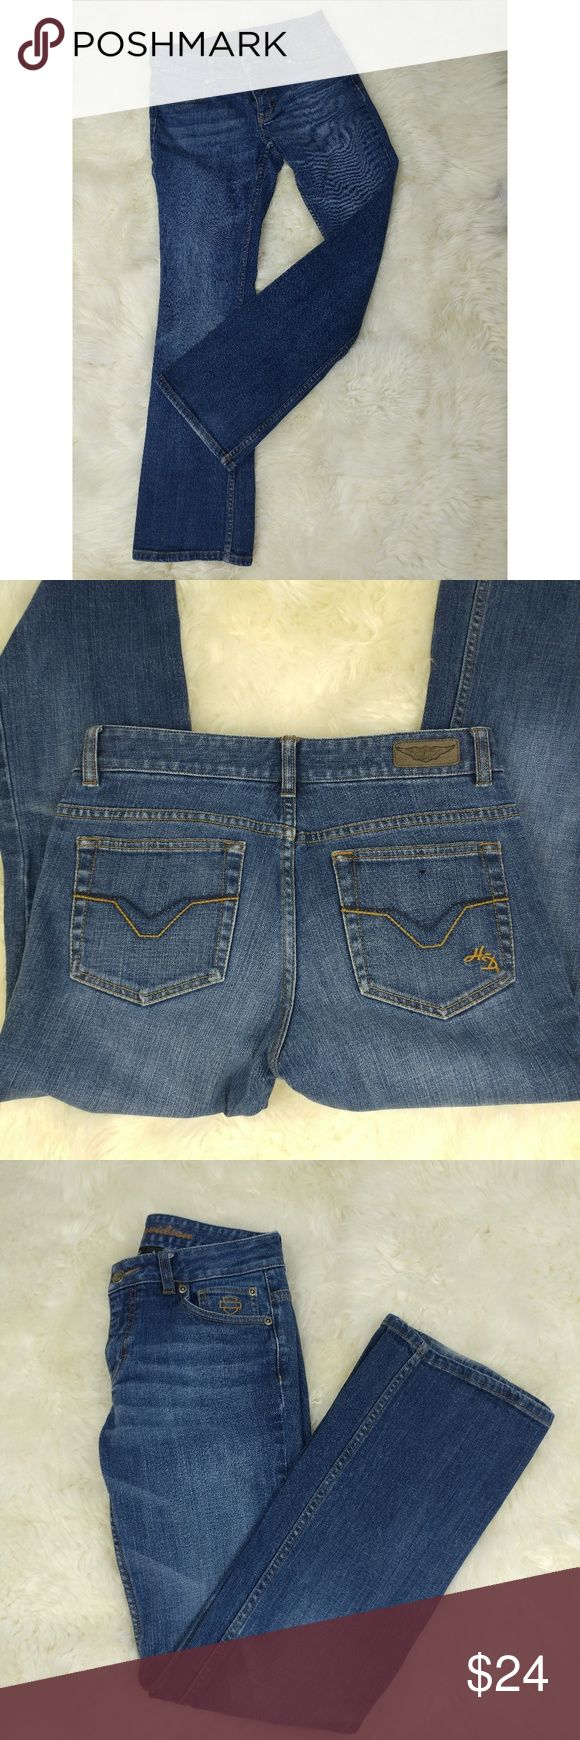 "Harley Davidson Bootcut Jeans Size 4 Great pair of jeans for any biker chick. Amazing quality and very little wear on the bottom of the legs. Inseam is 30"". Harley-Davidson Jeans Boot Cut"